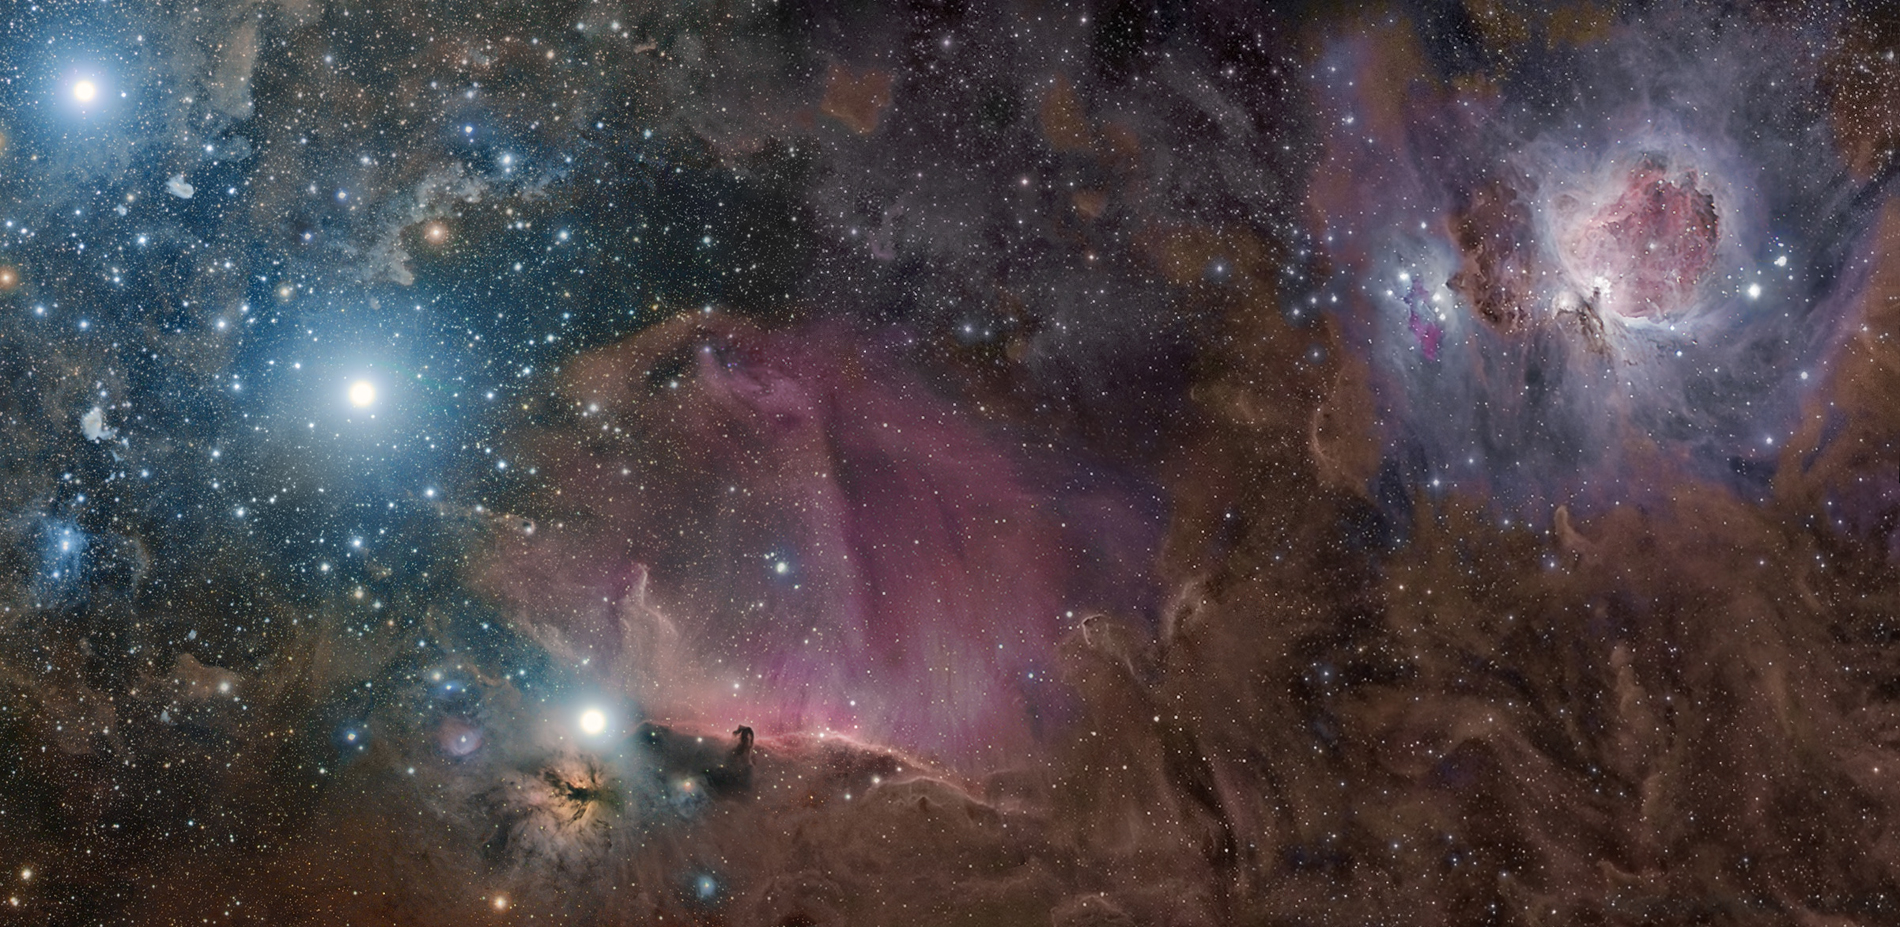 APOD: 2009 September 29 - Orion in Gas, Dust, and Stars